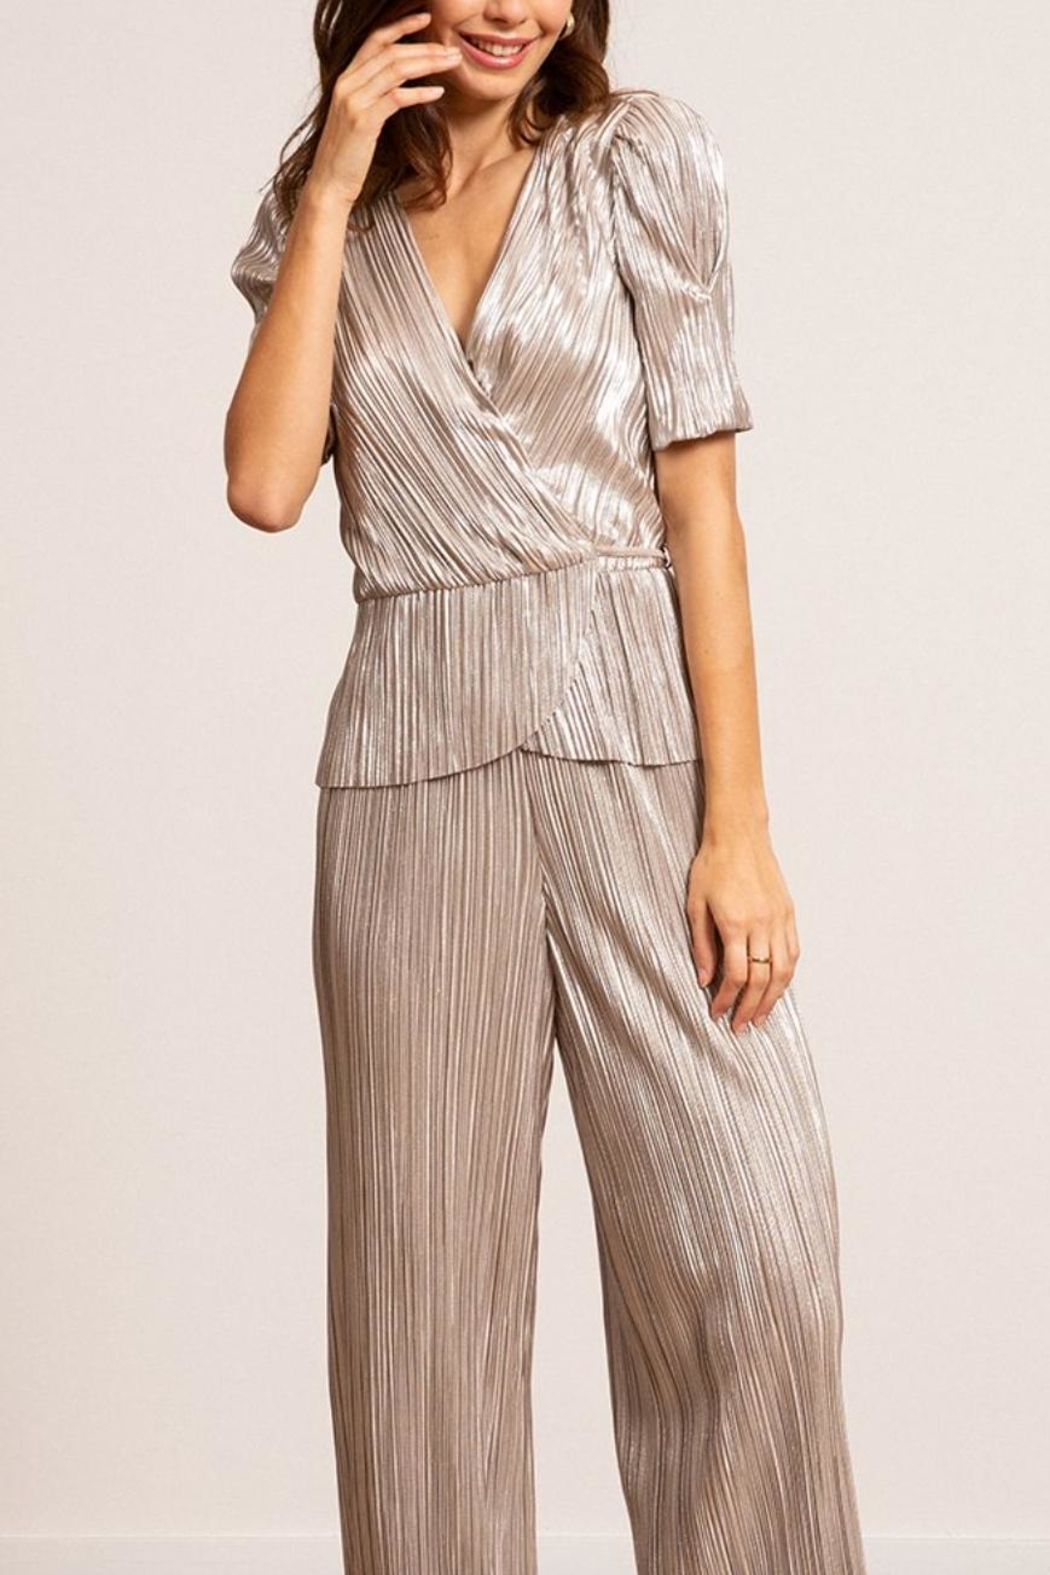 Lucy Paris Bianca Metallic Pant - Main Image